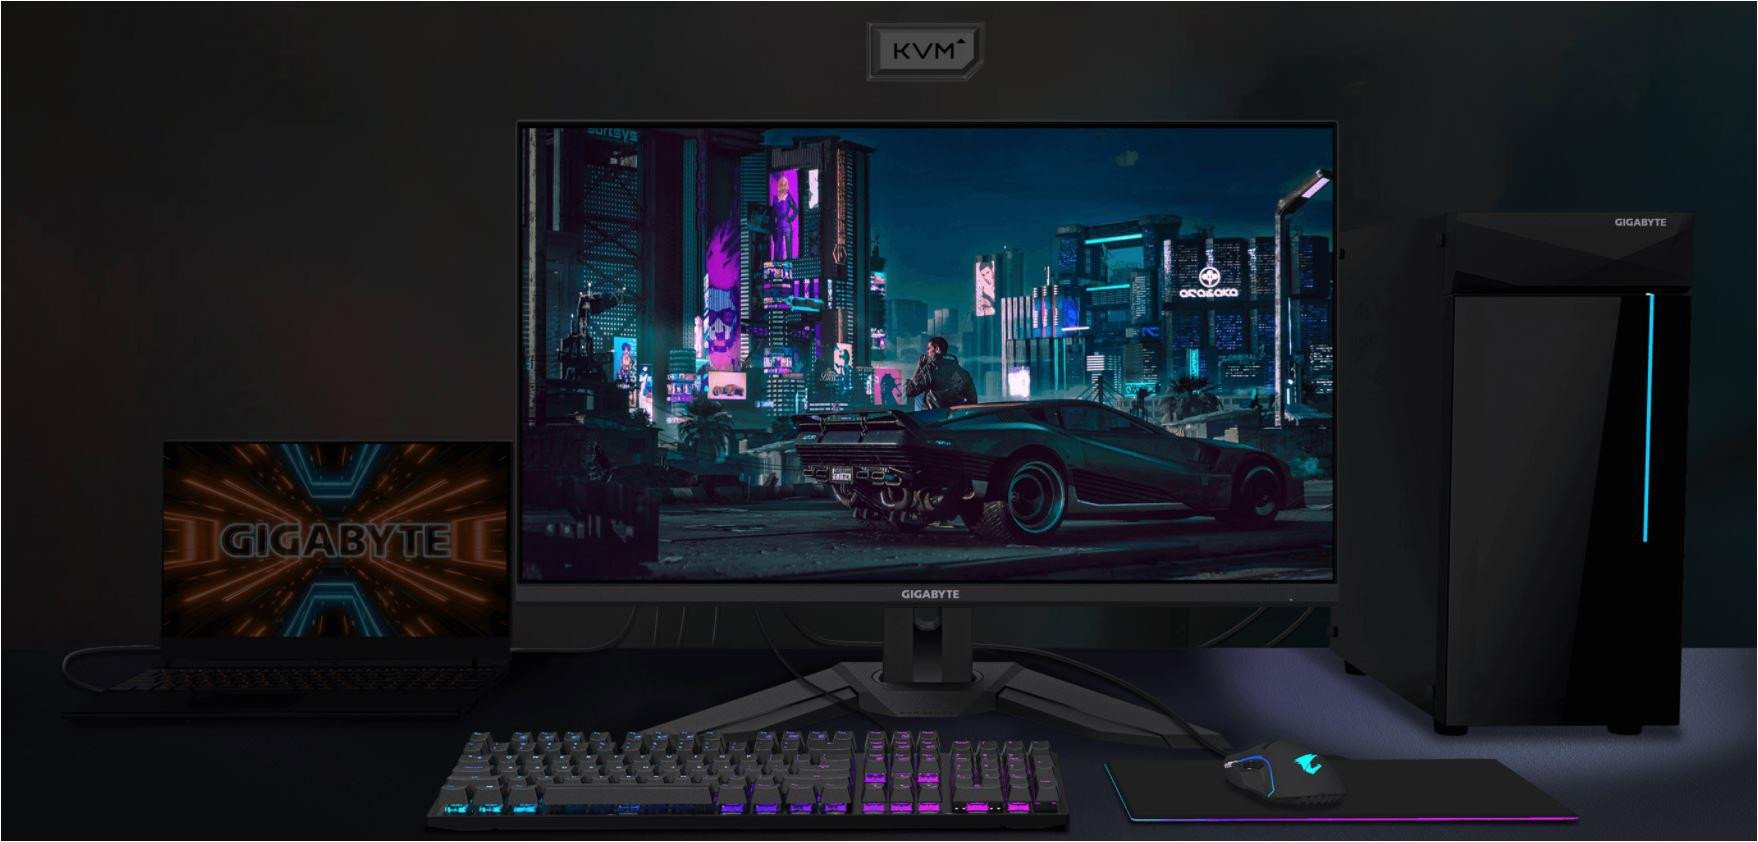 """Monitor Gaming Gigabyte M32Q 31.5"""", ips, 2560 x 1440 (QHD), Non-glare, Brightness, 350 cd/m2 (TYP), Contrast Ratio:1000:1, Viewing Angle: 178° (H)/178°(V), Display Colors: 8 bits, Response Time: 0.8ms (MPRT)/1ms (GTG), Refresh Rate: 165Hz/OC 170Hz, Flicker-free. - imaginea 1"""